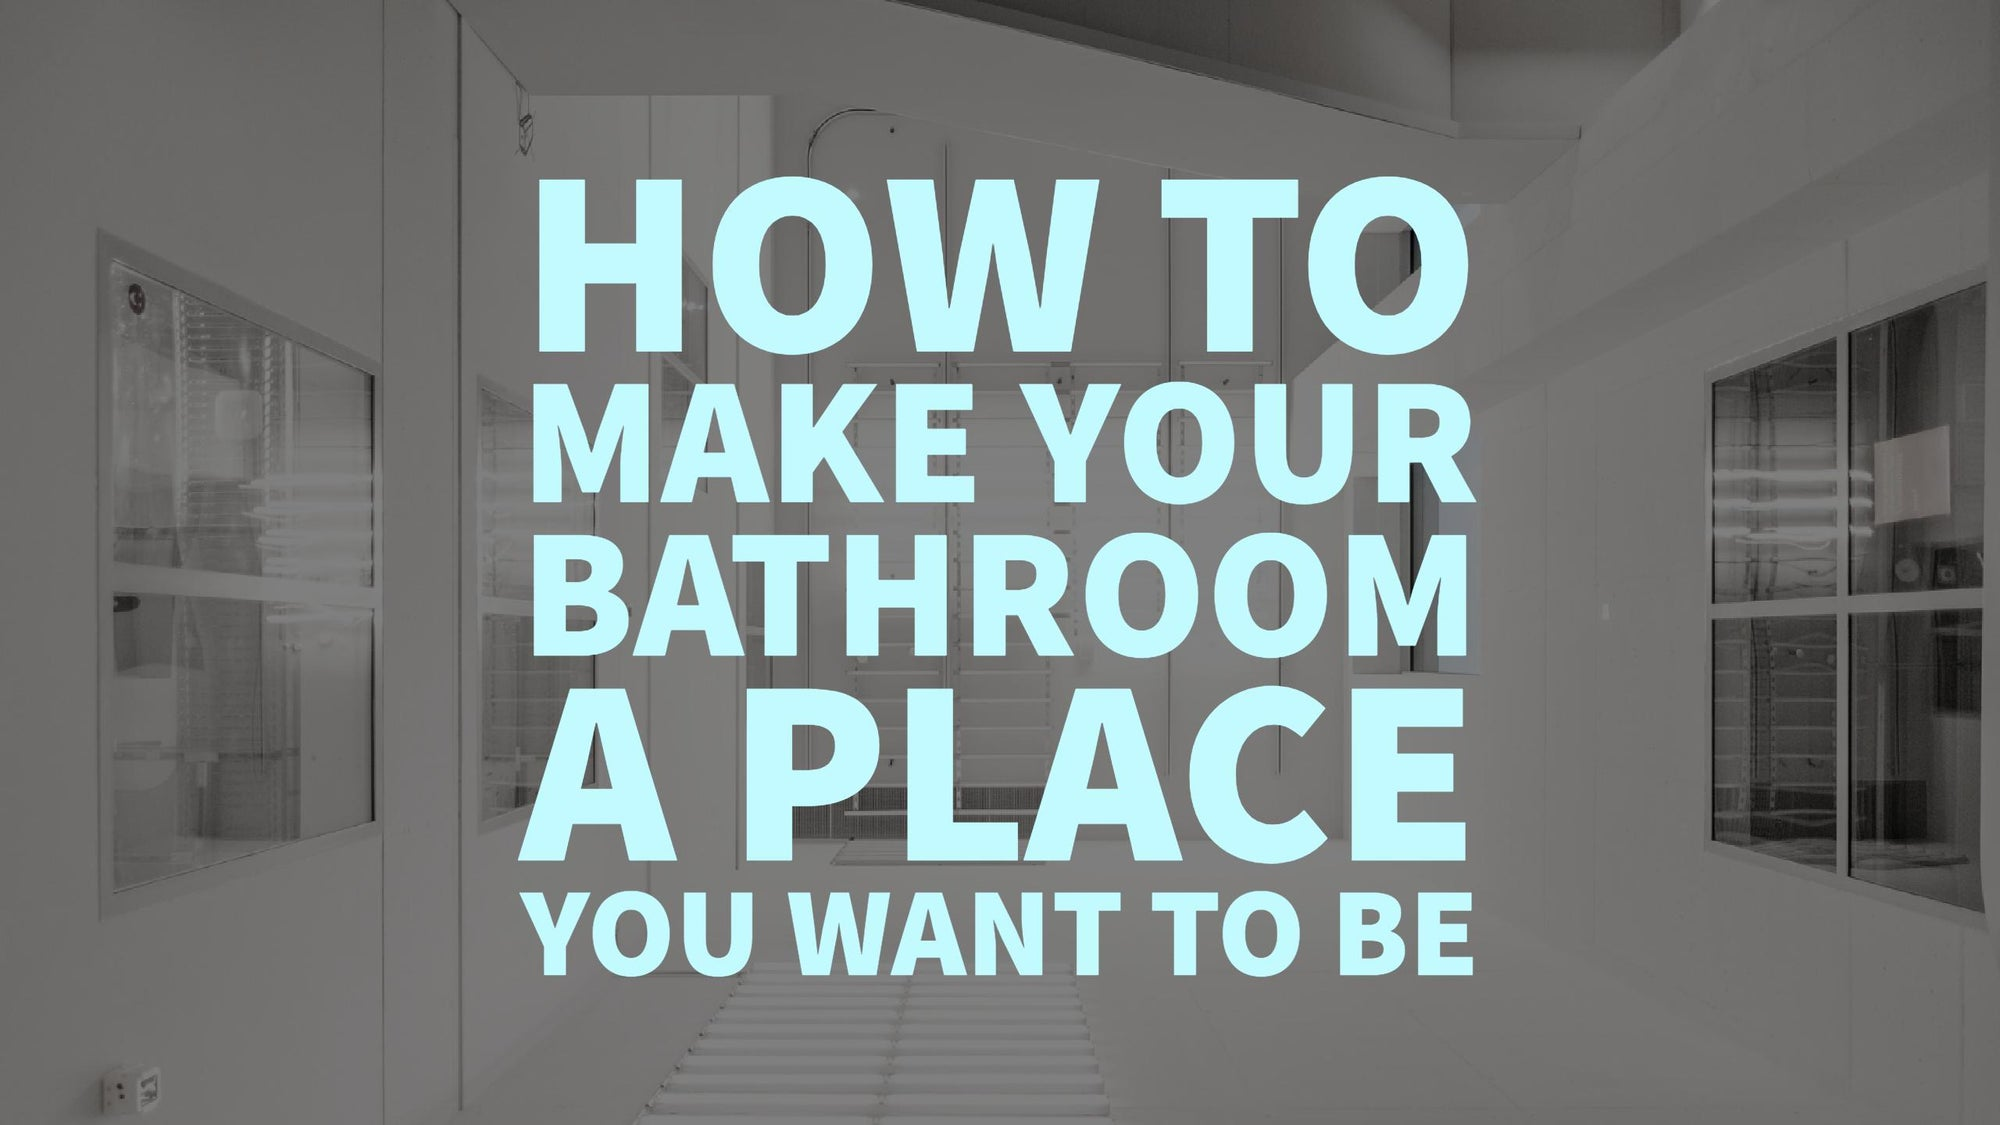 How To Make Your Bathroom a Place You Want to Be